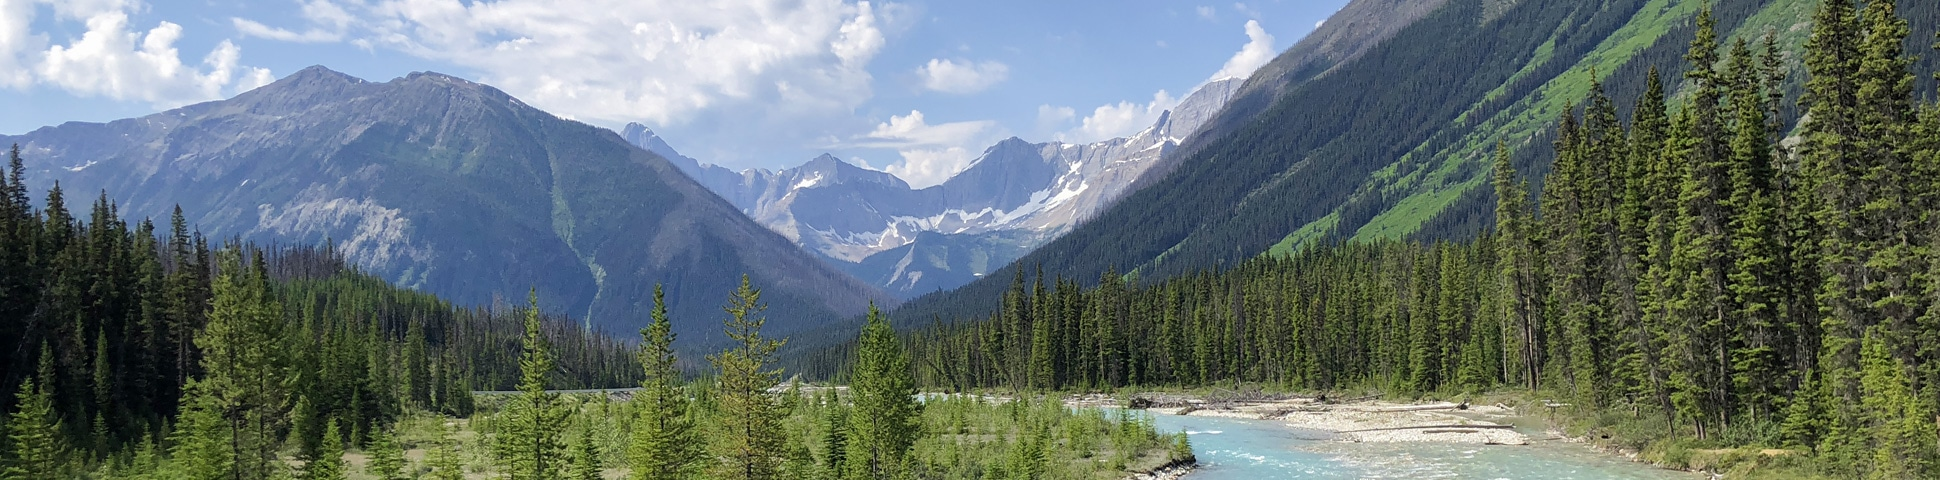 Panorama of Paint Pots hike in Kootenay National Park, the Canadian Rockies